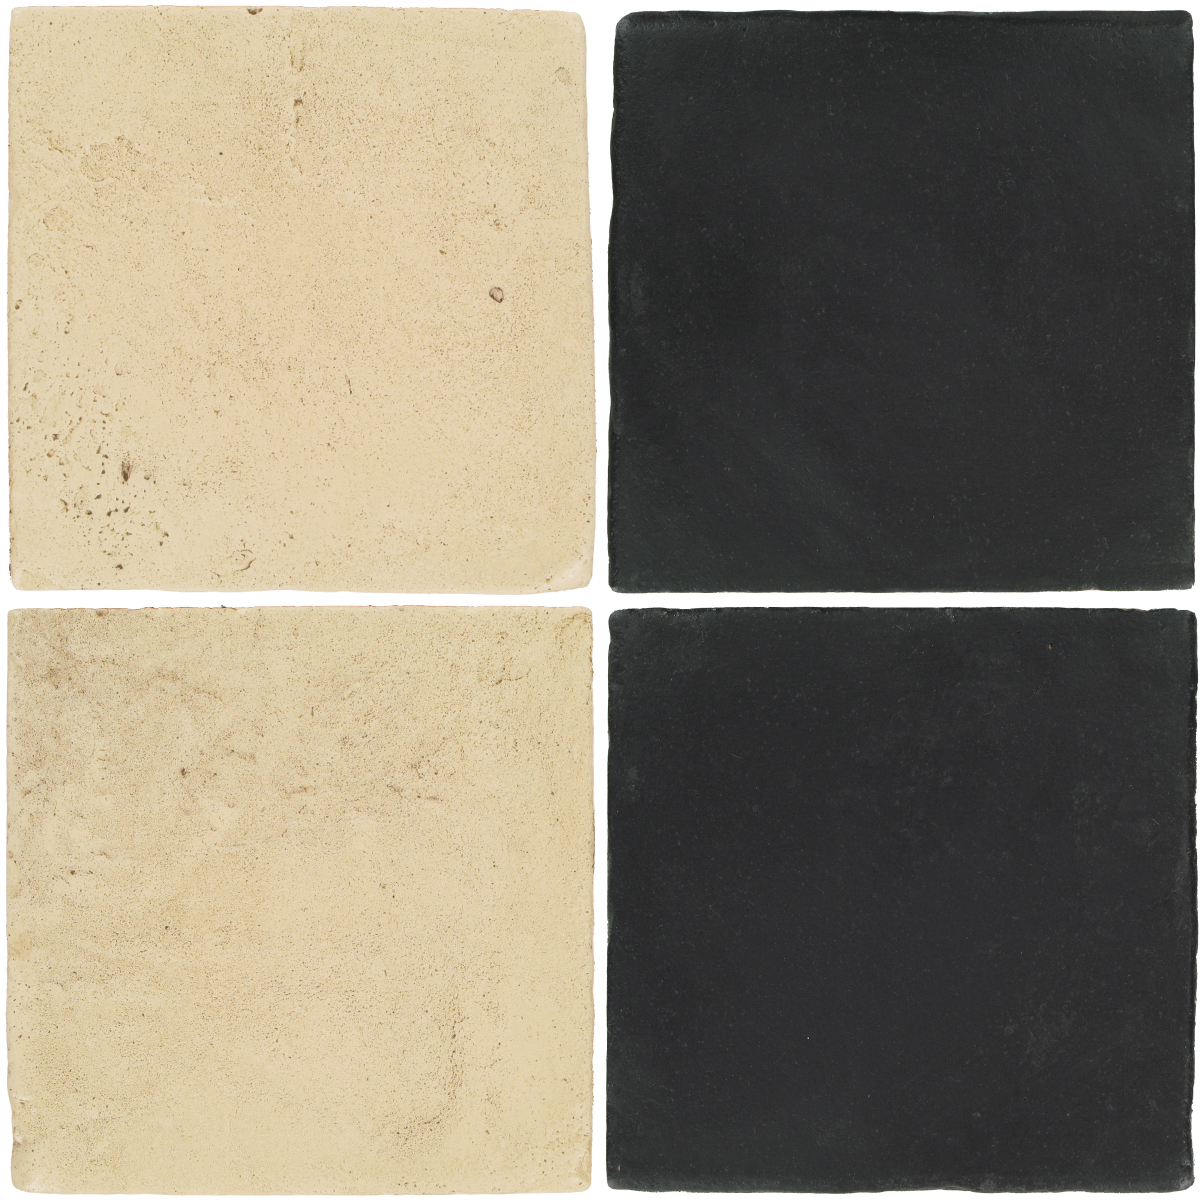 Pedralbes Antique Terracotta  2 Color Combinations  VTG-PGPW Pergamino White + OHS-PGCB Carbon Black